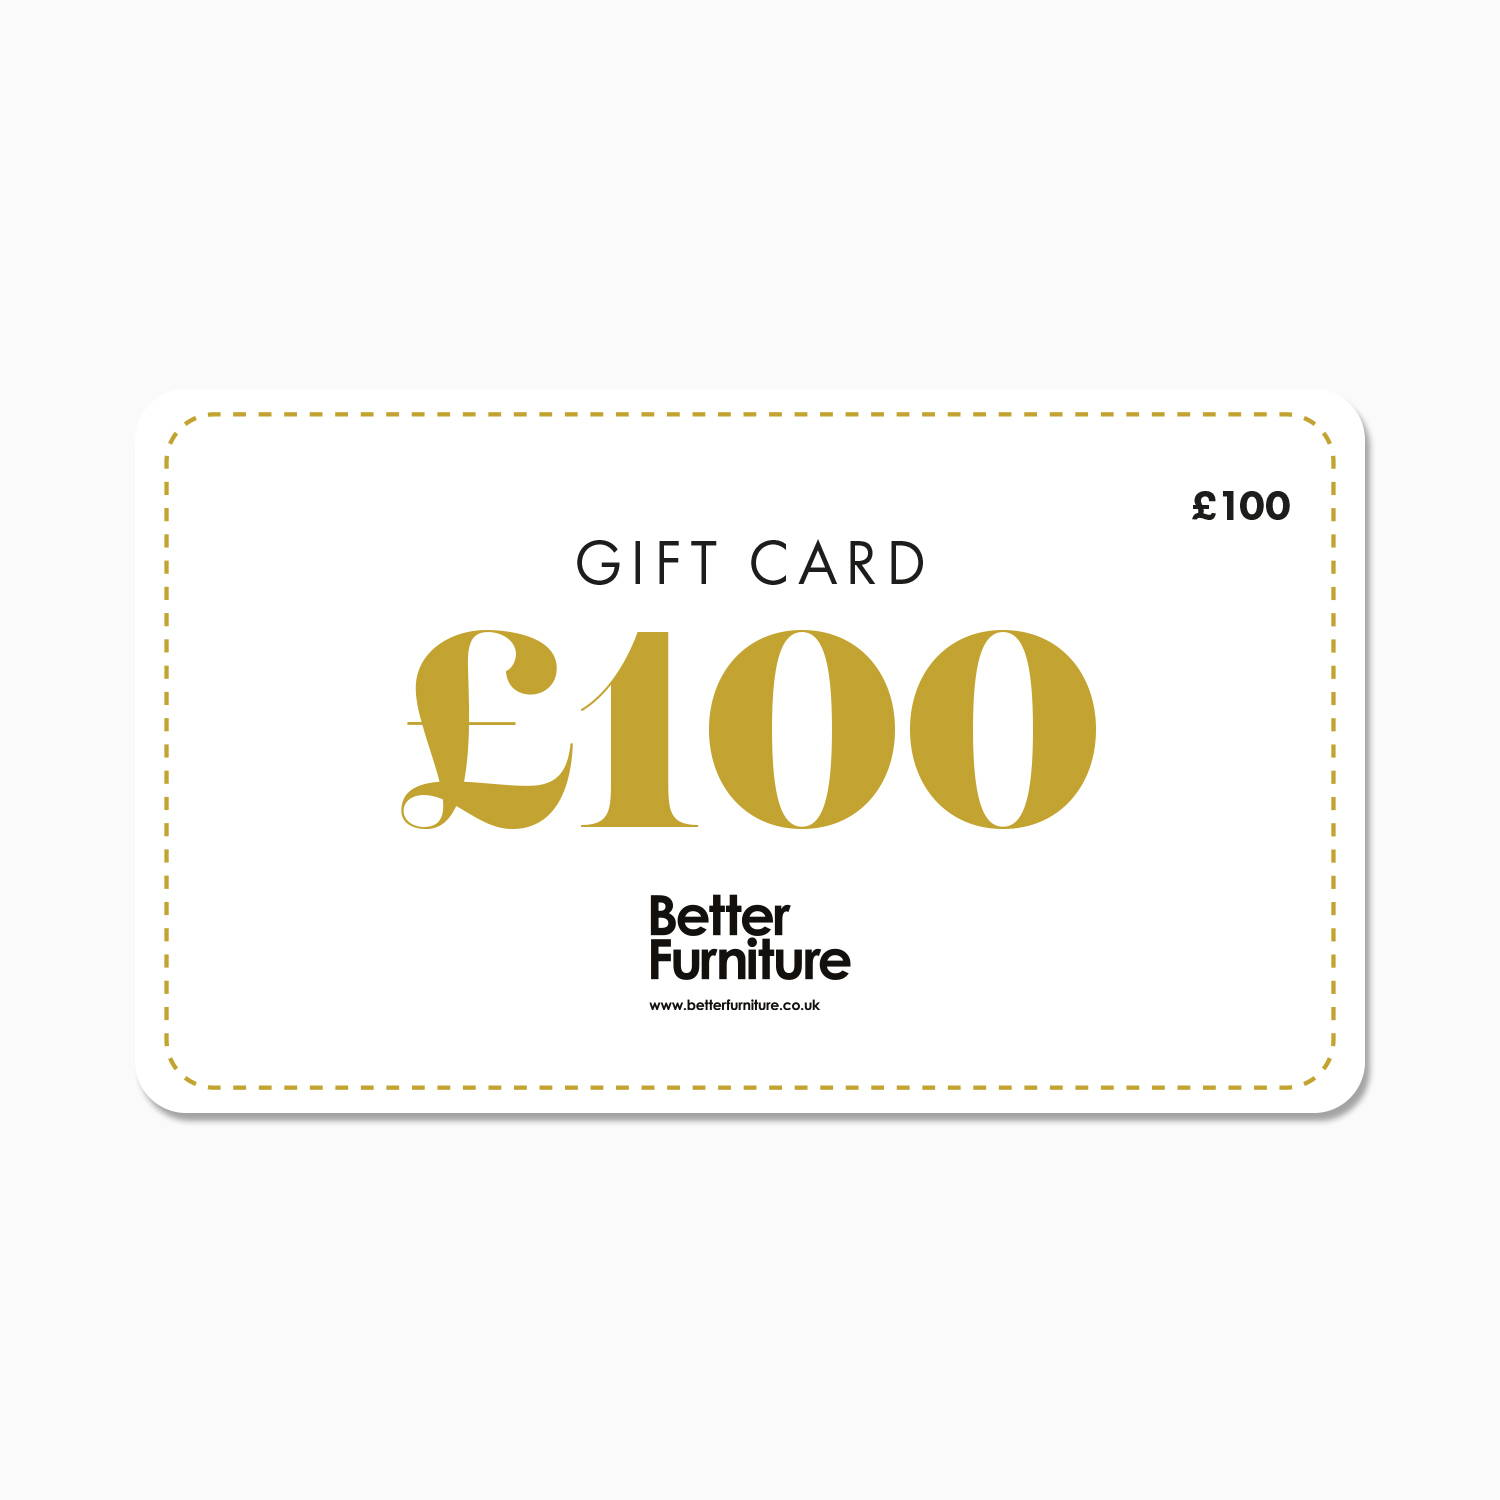 £100 Better Furniture Gift Card